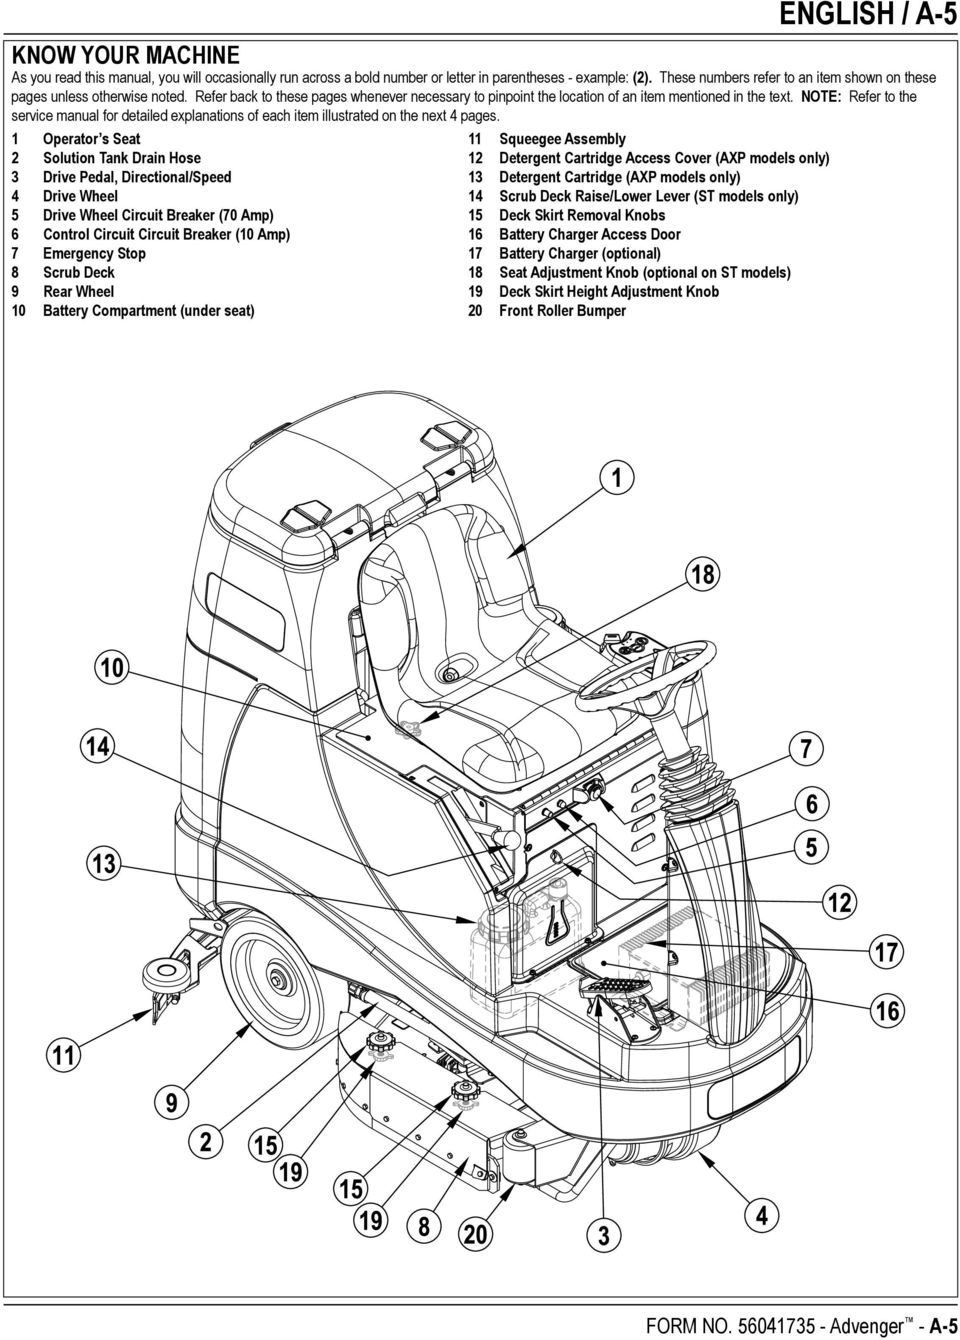 NOTE: Refer to the service manual for detailed explanations of each item illustrated on the next 4 pages.